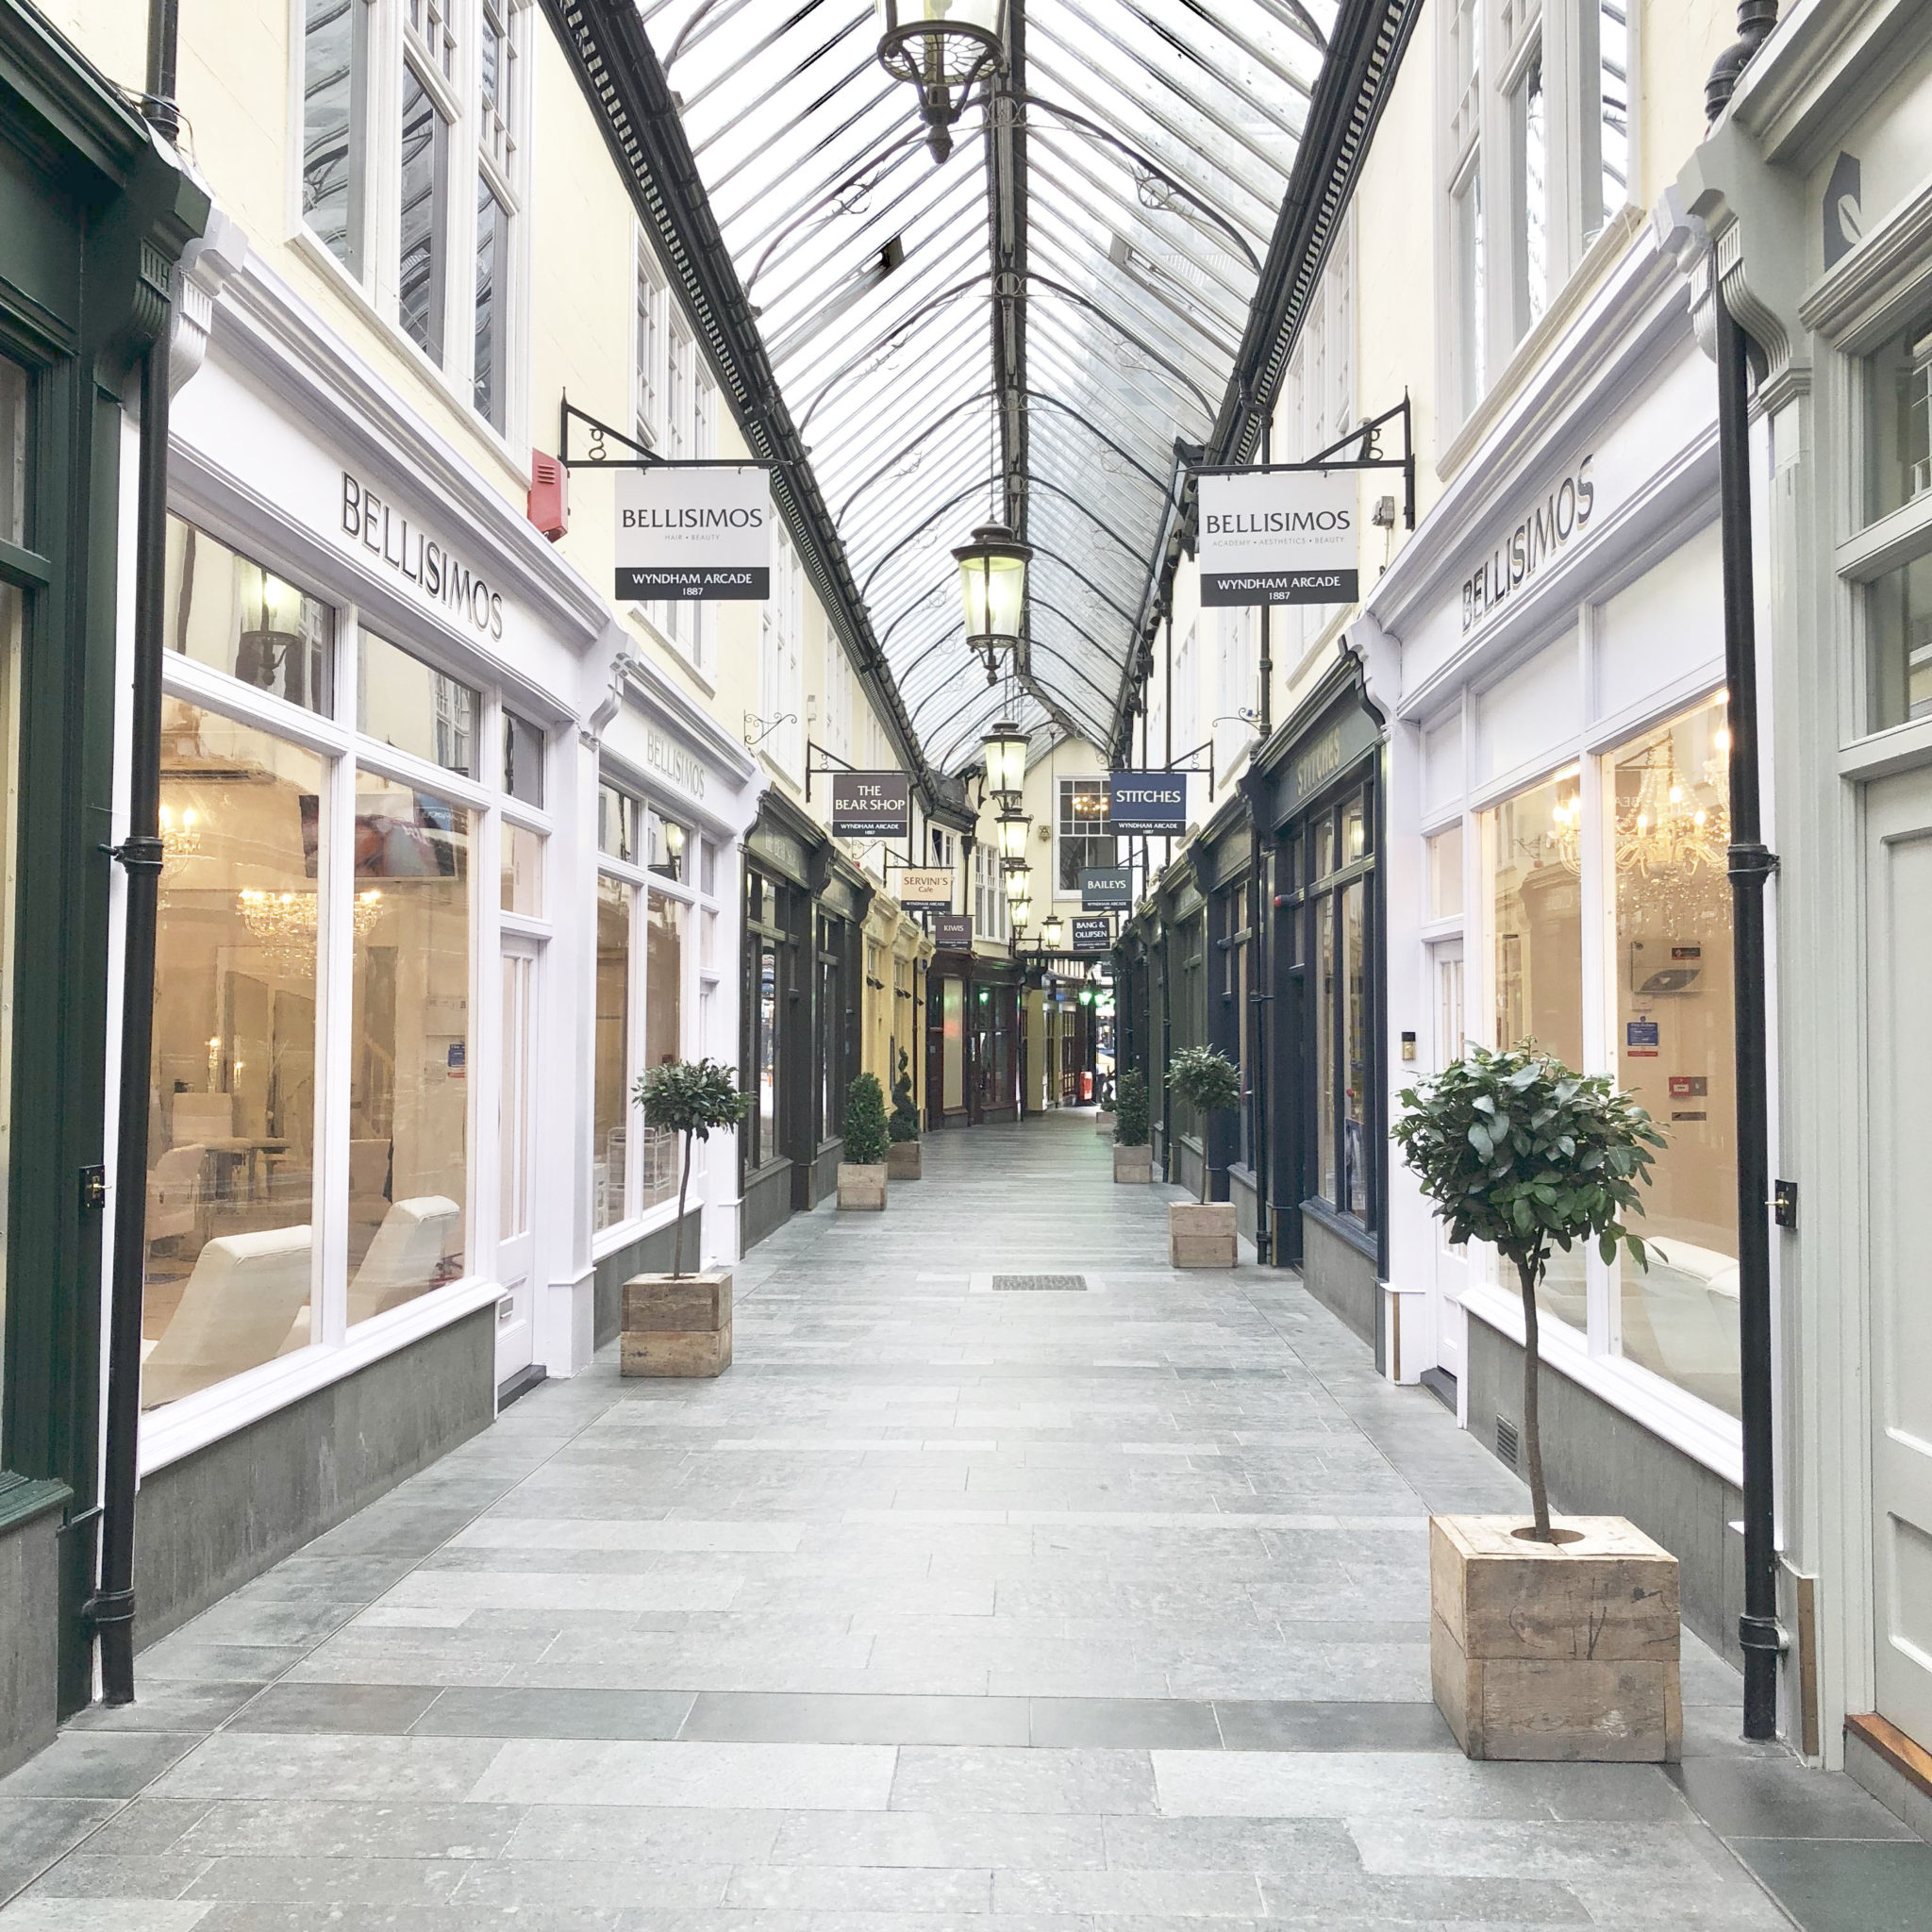 Wyndham Arcade in Cardiff, showing Bellisimo's with salons on both sides